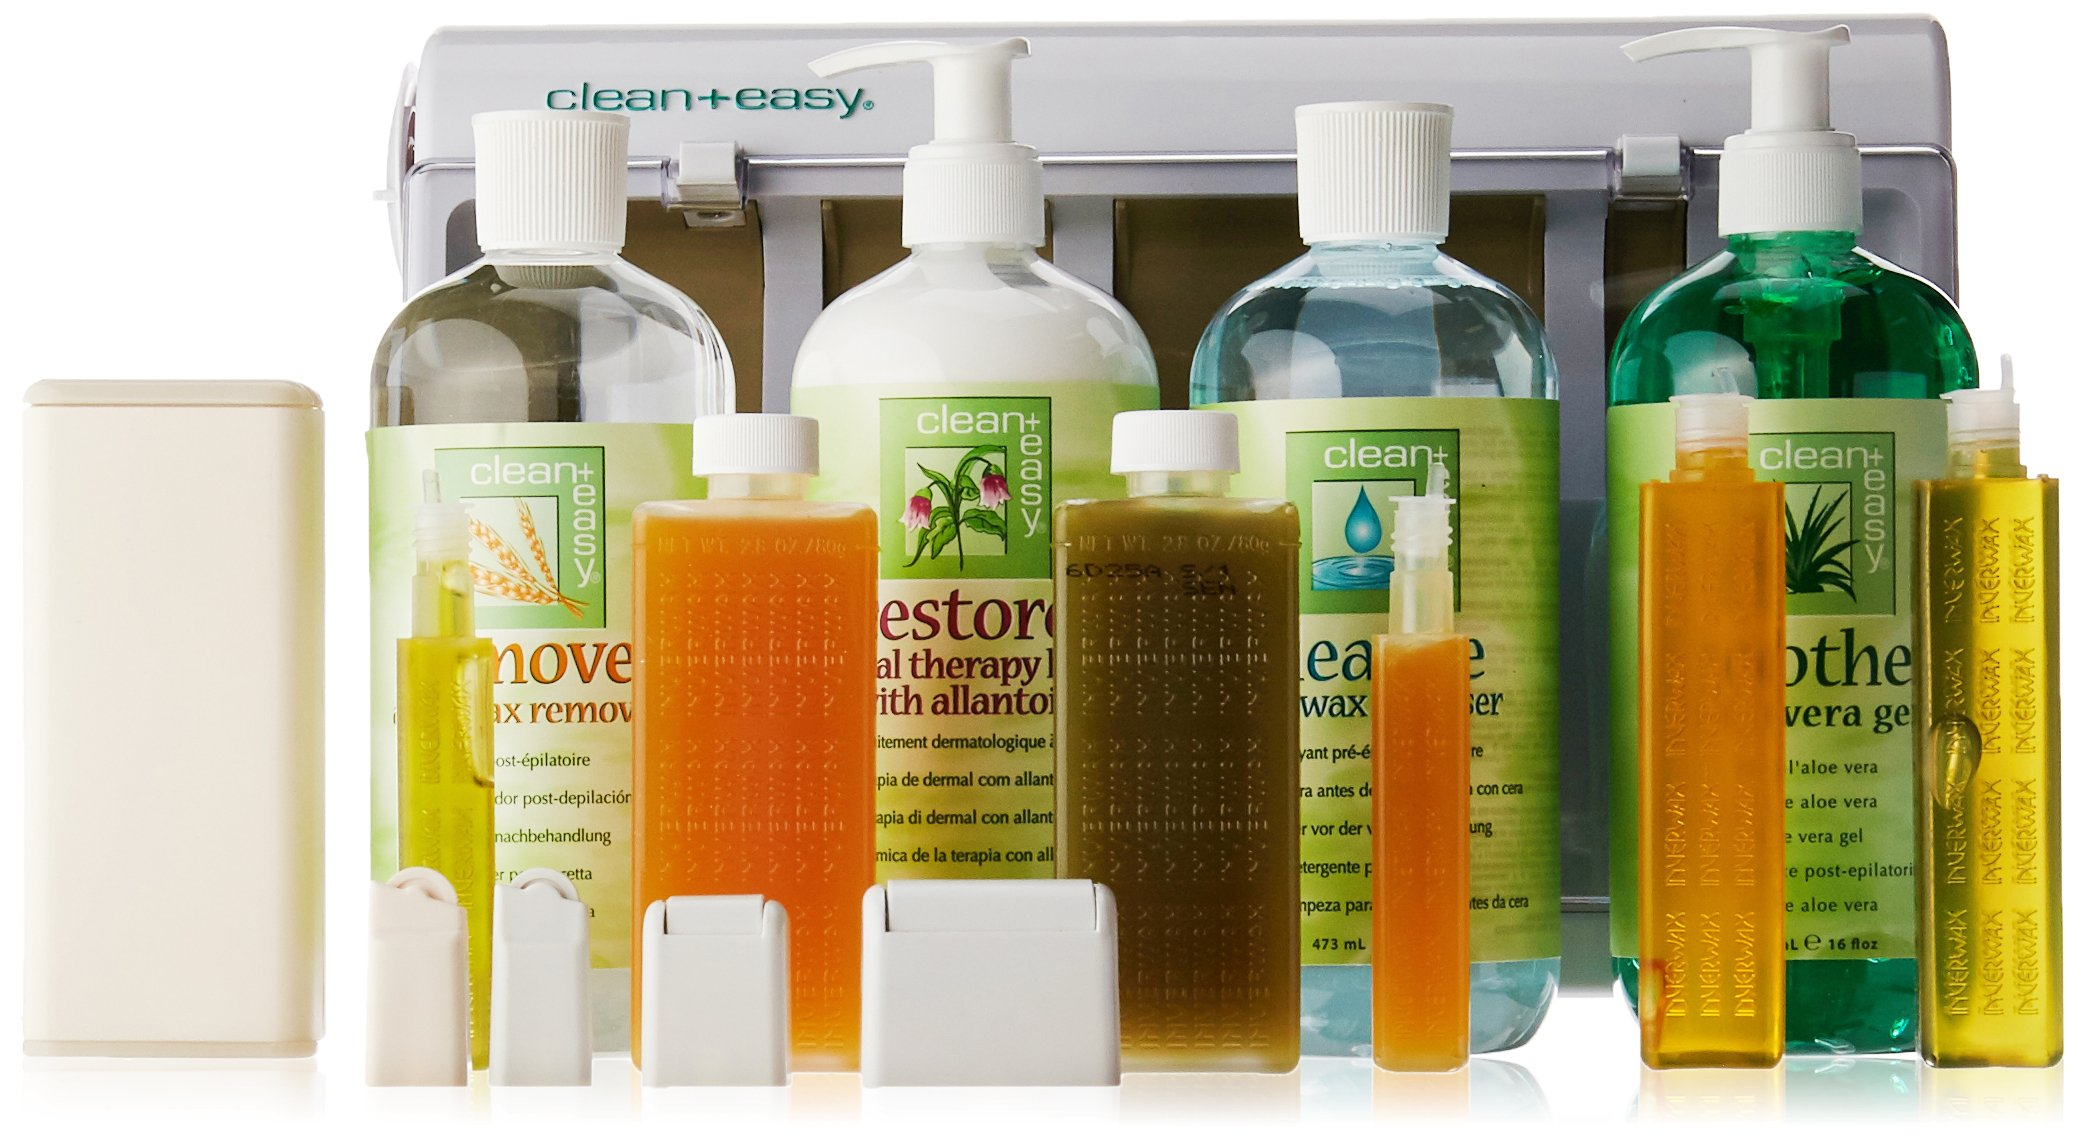 Clean + Easy Professional Waxing Spa Full Service Kit, 20 Count by Clean + Easy (Image #1)